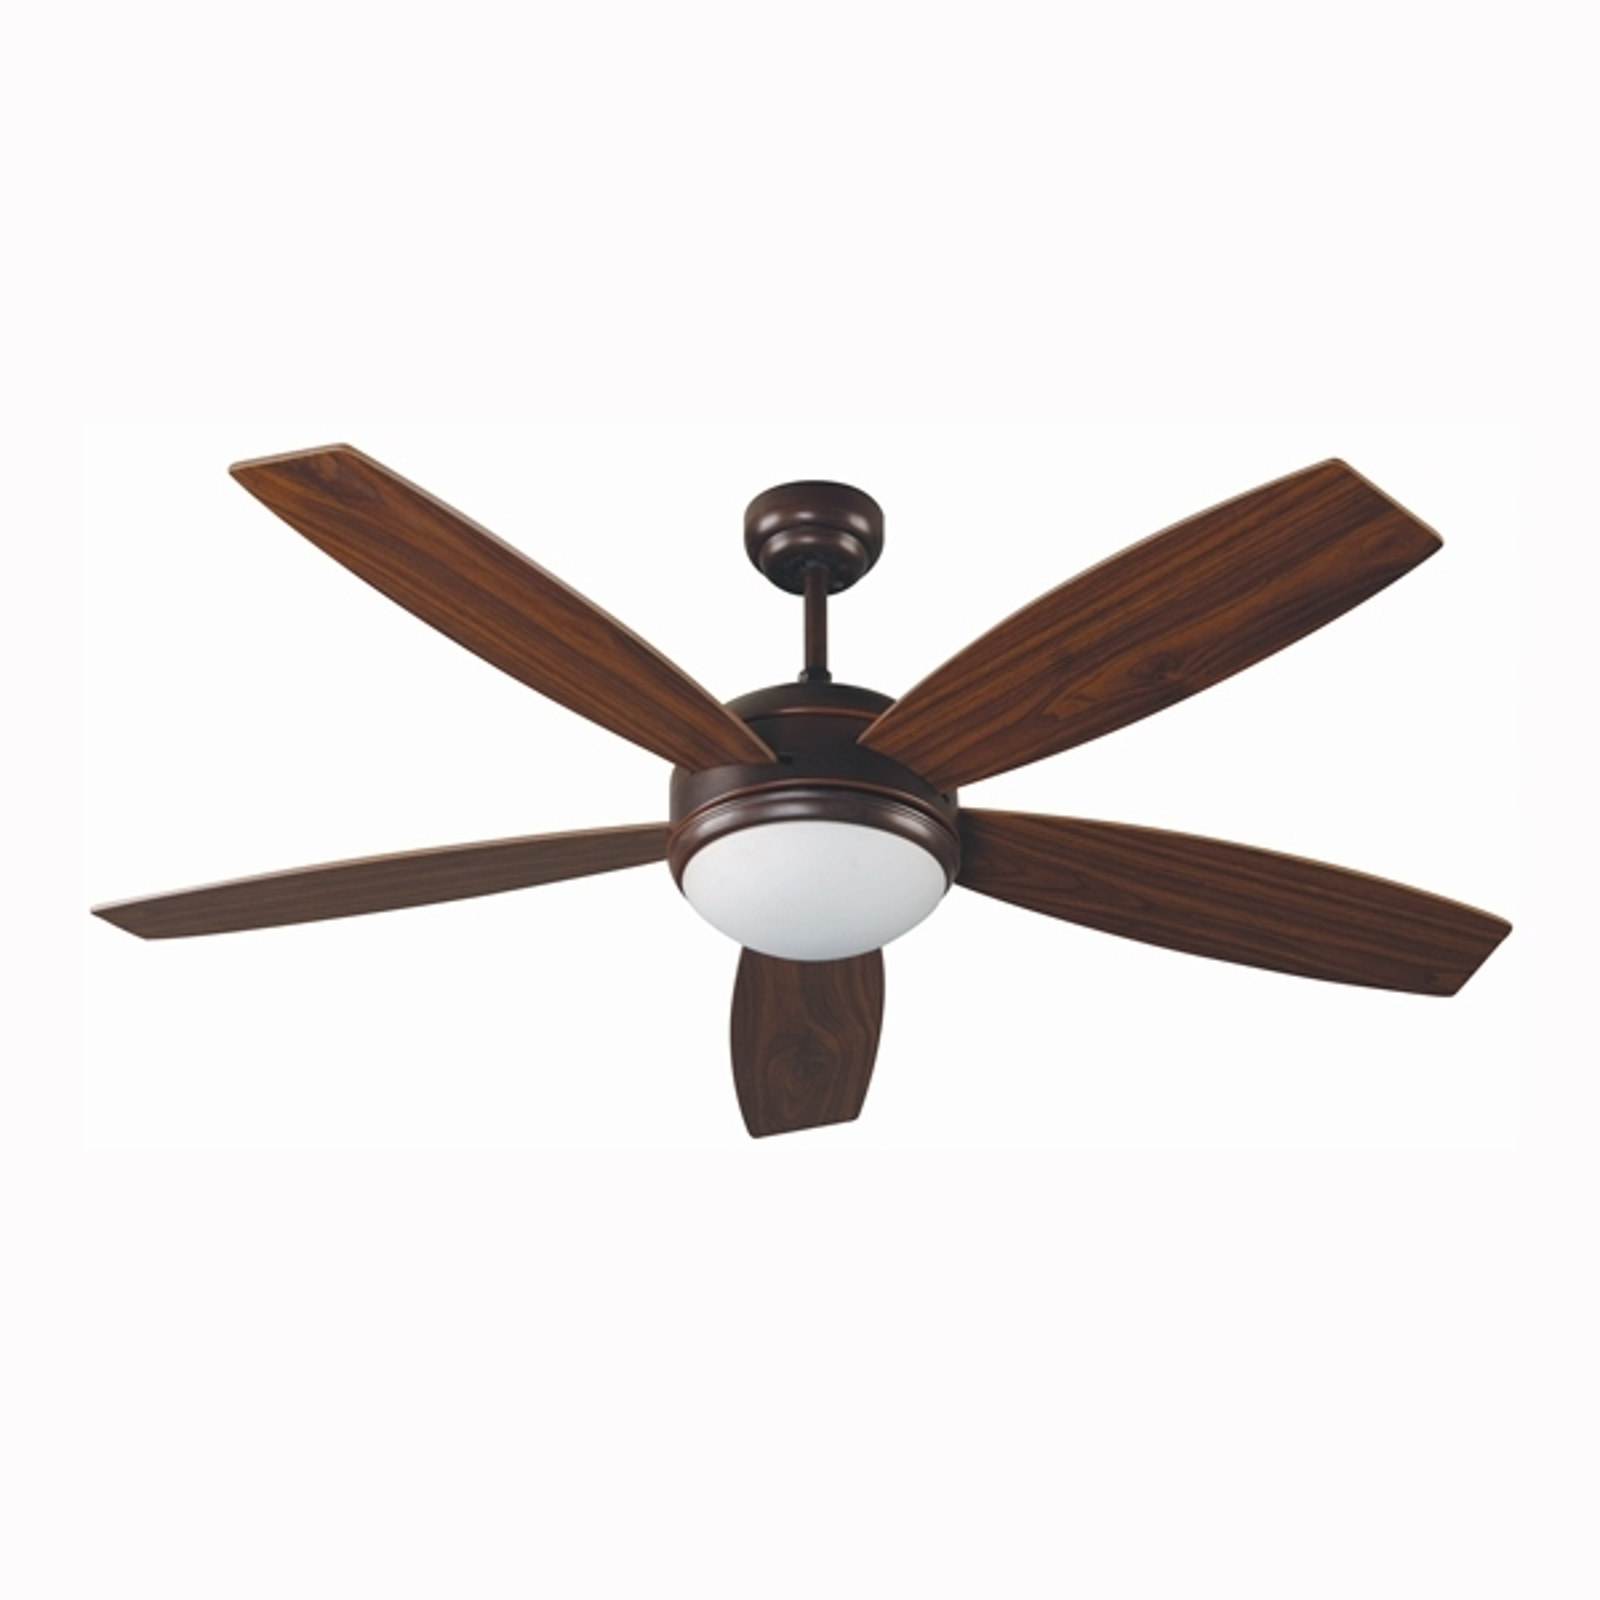 VANU Large Ceiling Fan with Remote Control, Brown_3506021_1